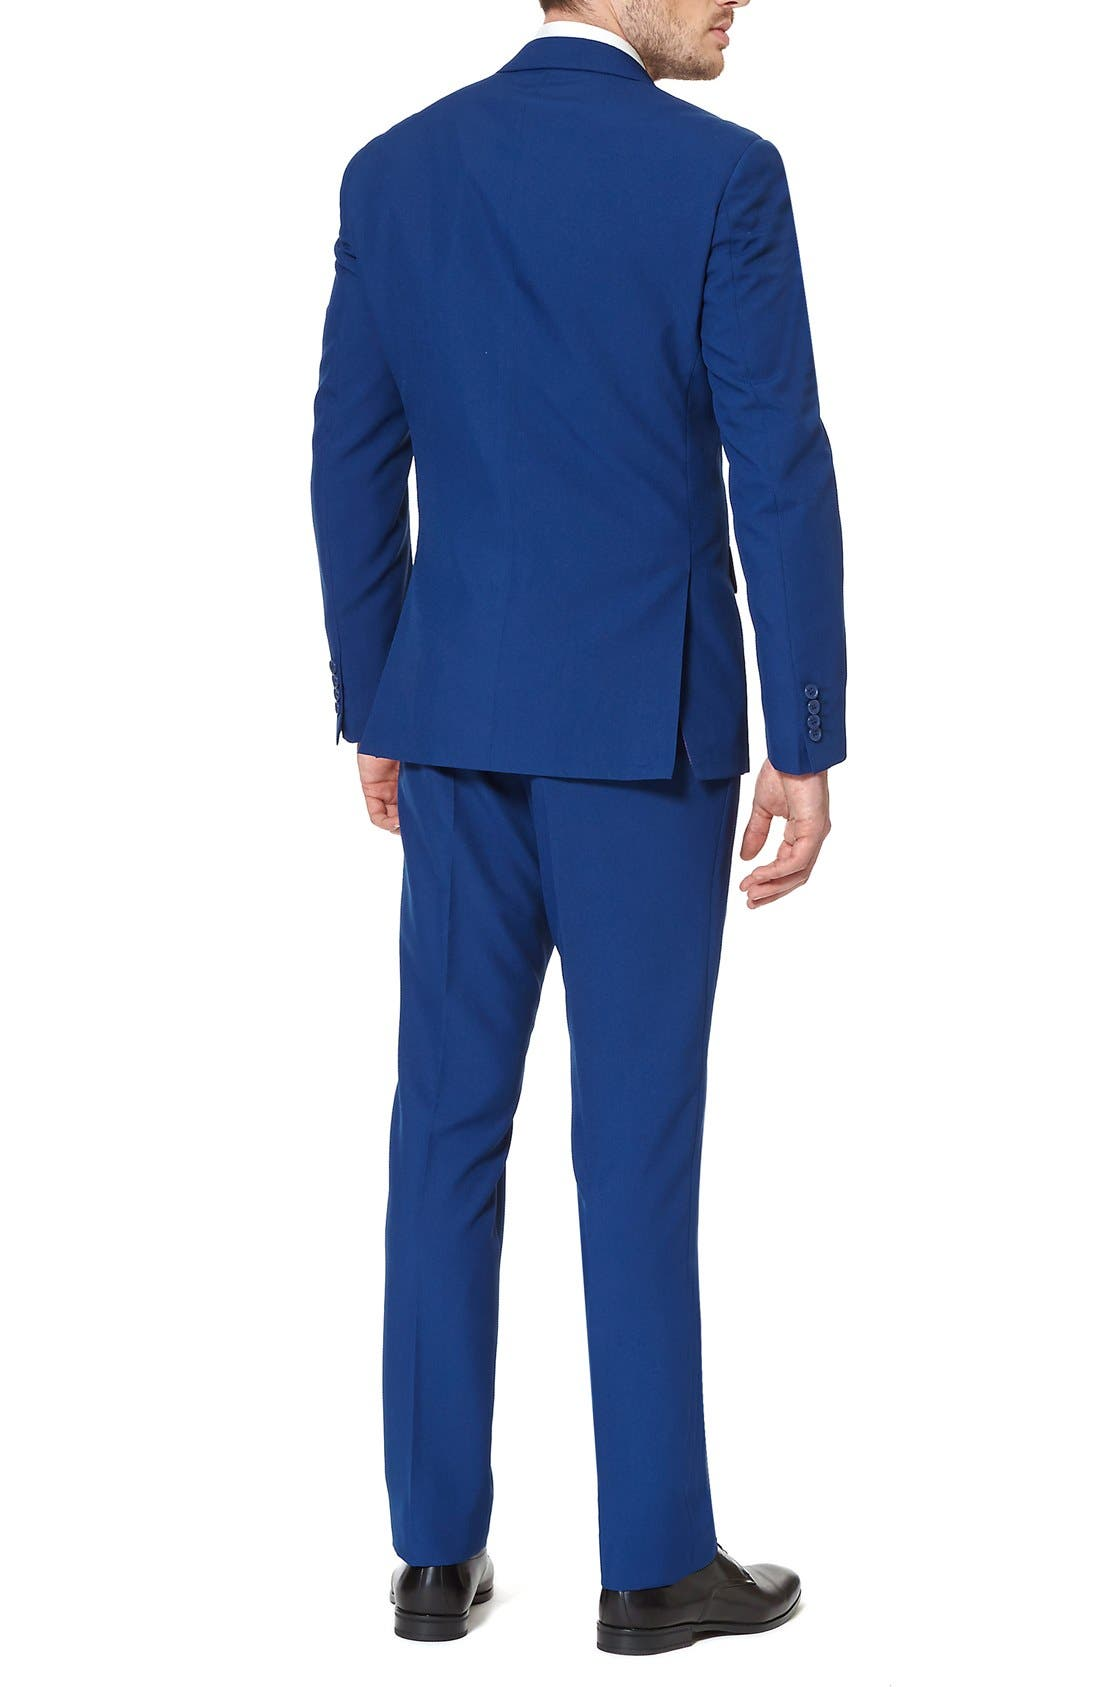 Alternate Image 2  - OppoSuits 'Navy Royale' Trim Fit Two-Piece Suit with Tie